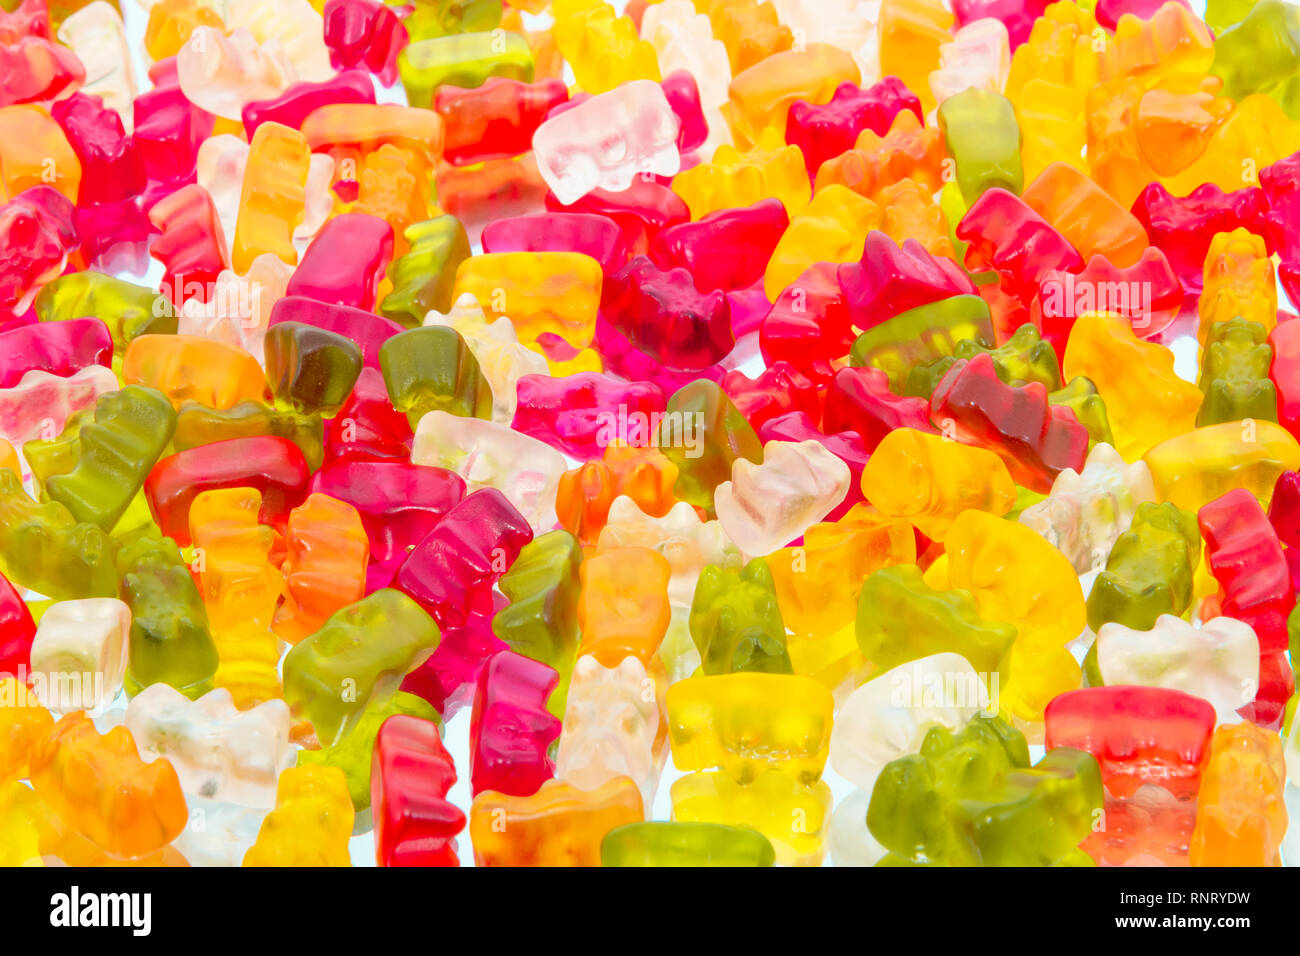 colorful gummy bears for background. Stock Photo